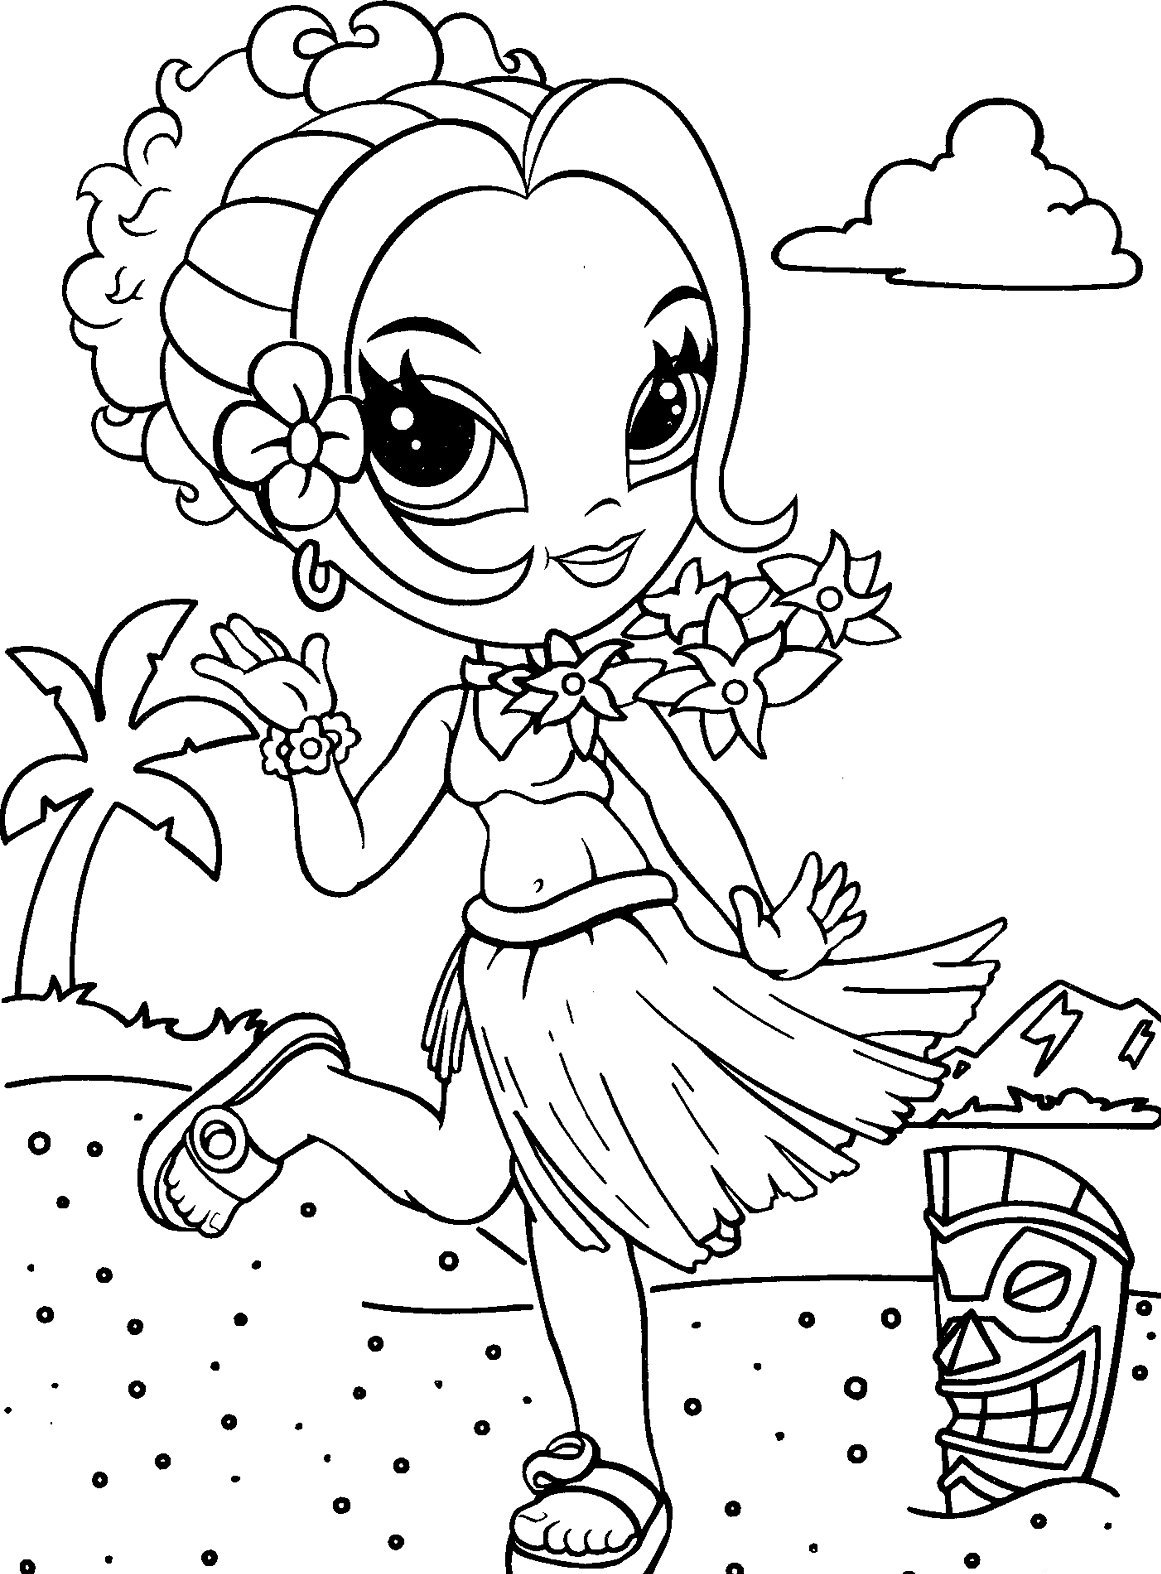 lisa frank coloring pages - coloring suite pages 3585